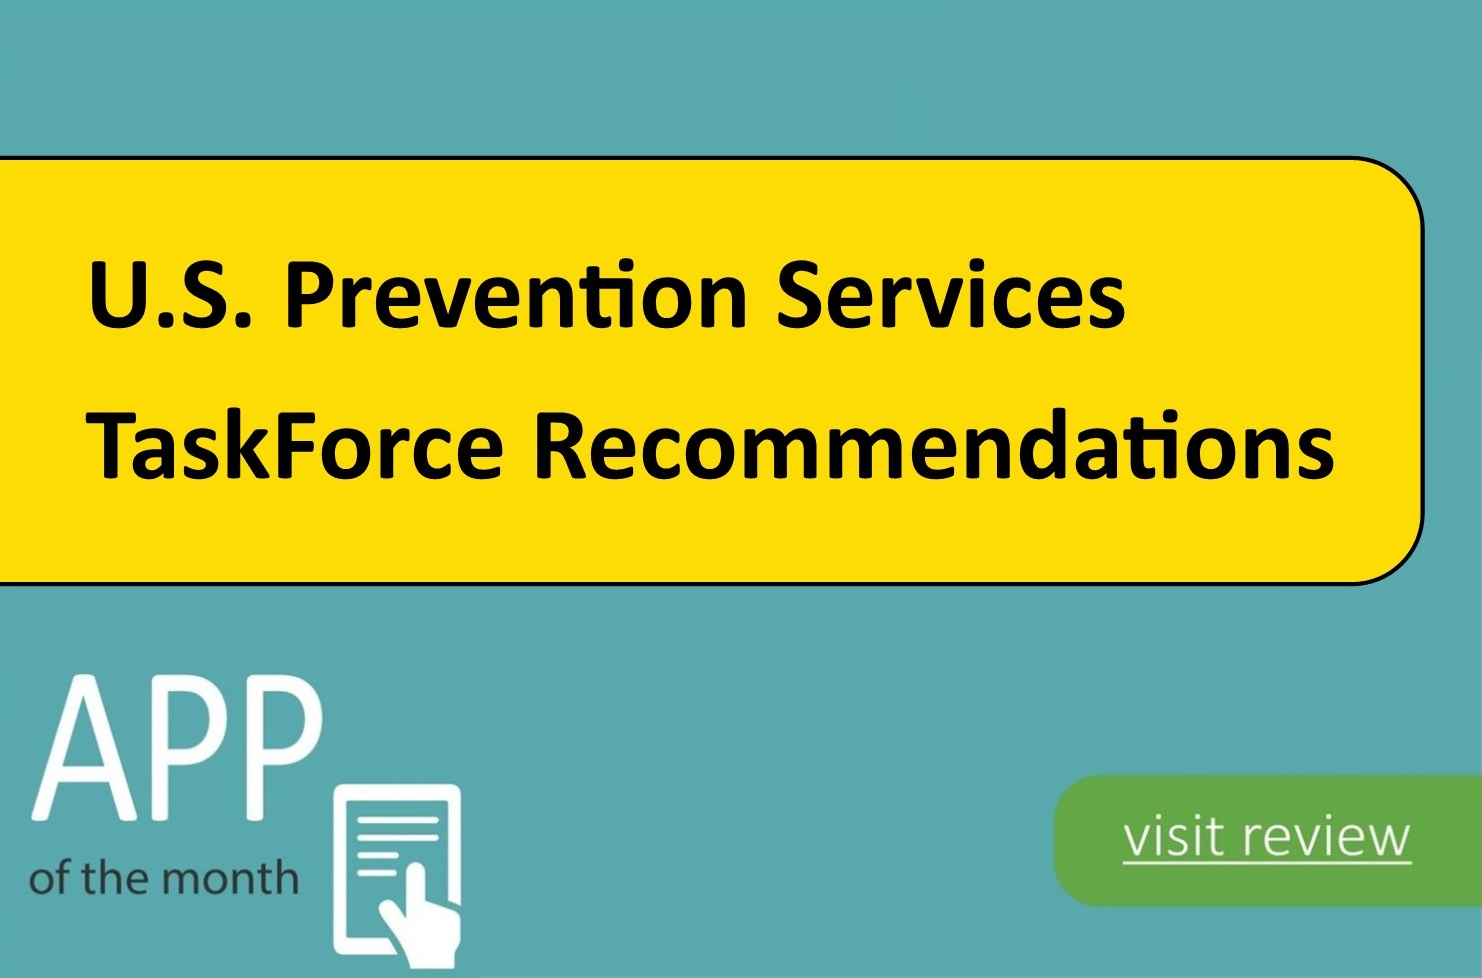 U.S. Prevention Services TaskForce (USPSTF) Recommendations